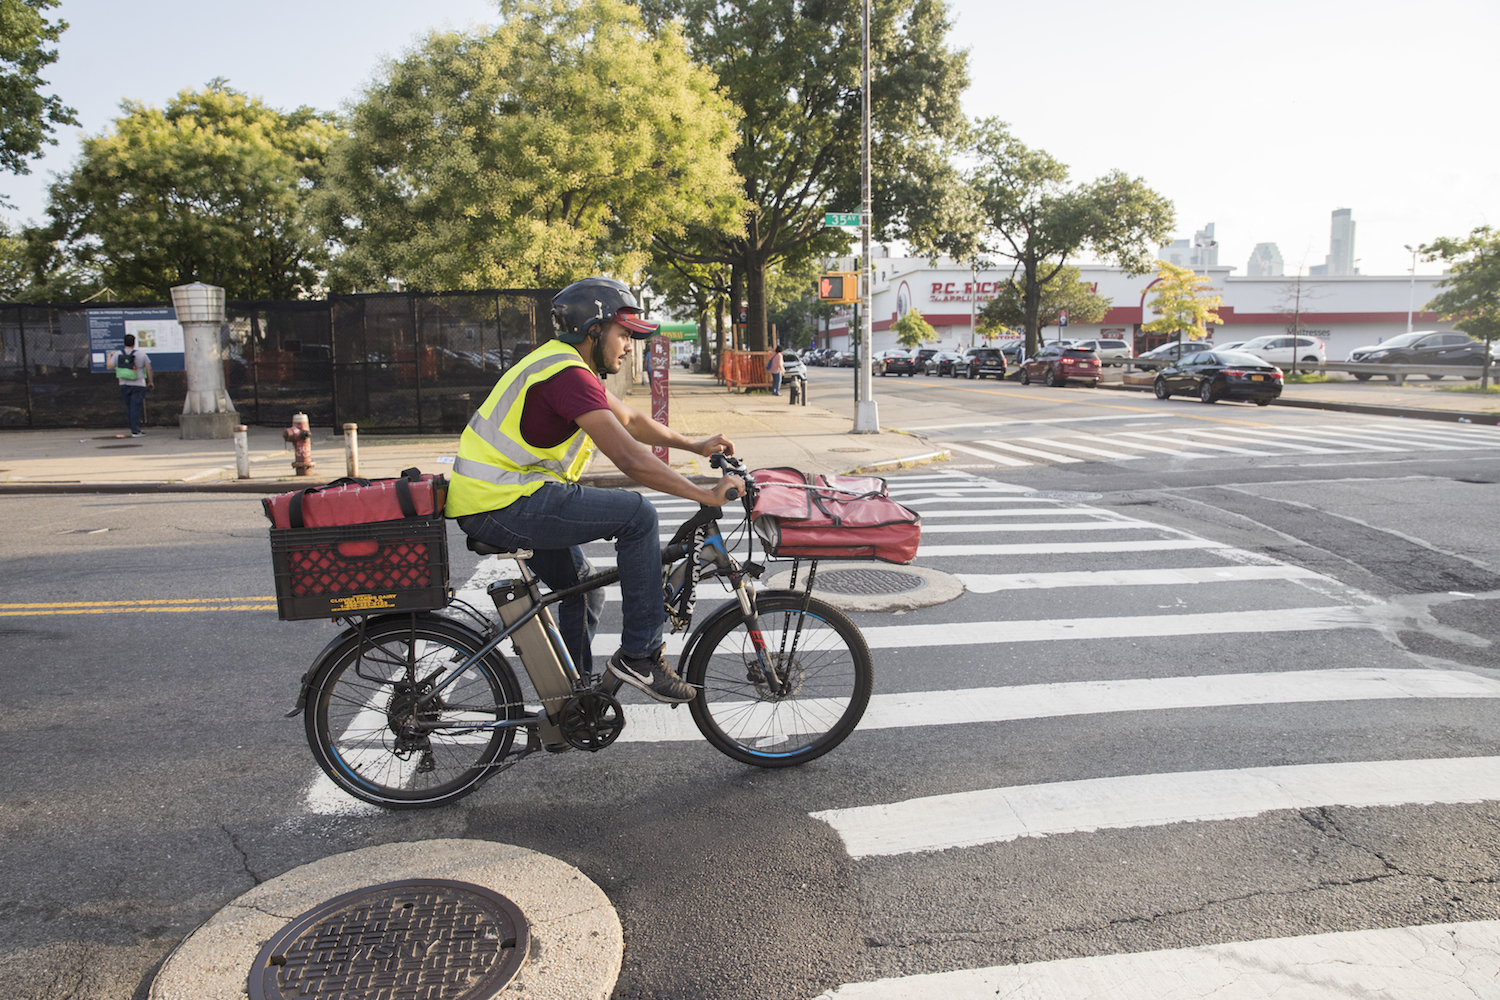 Bike Delivery People Is One Of The Most Underpaid And Dangerous